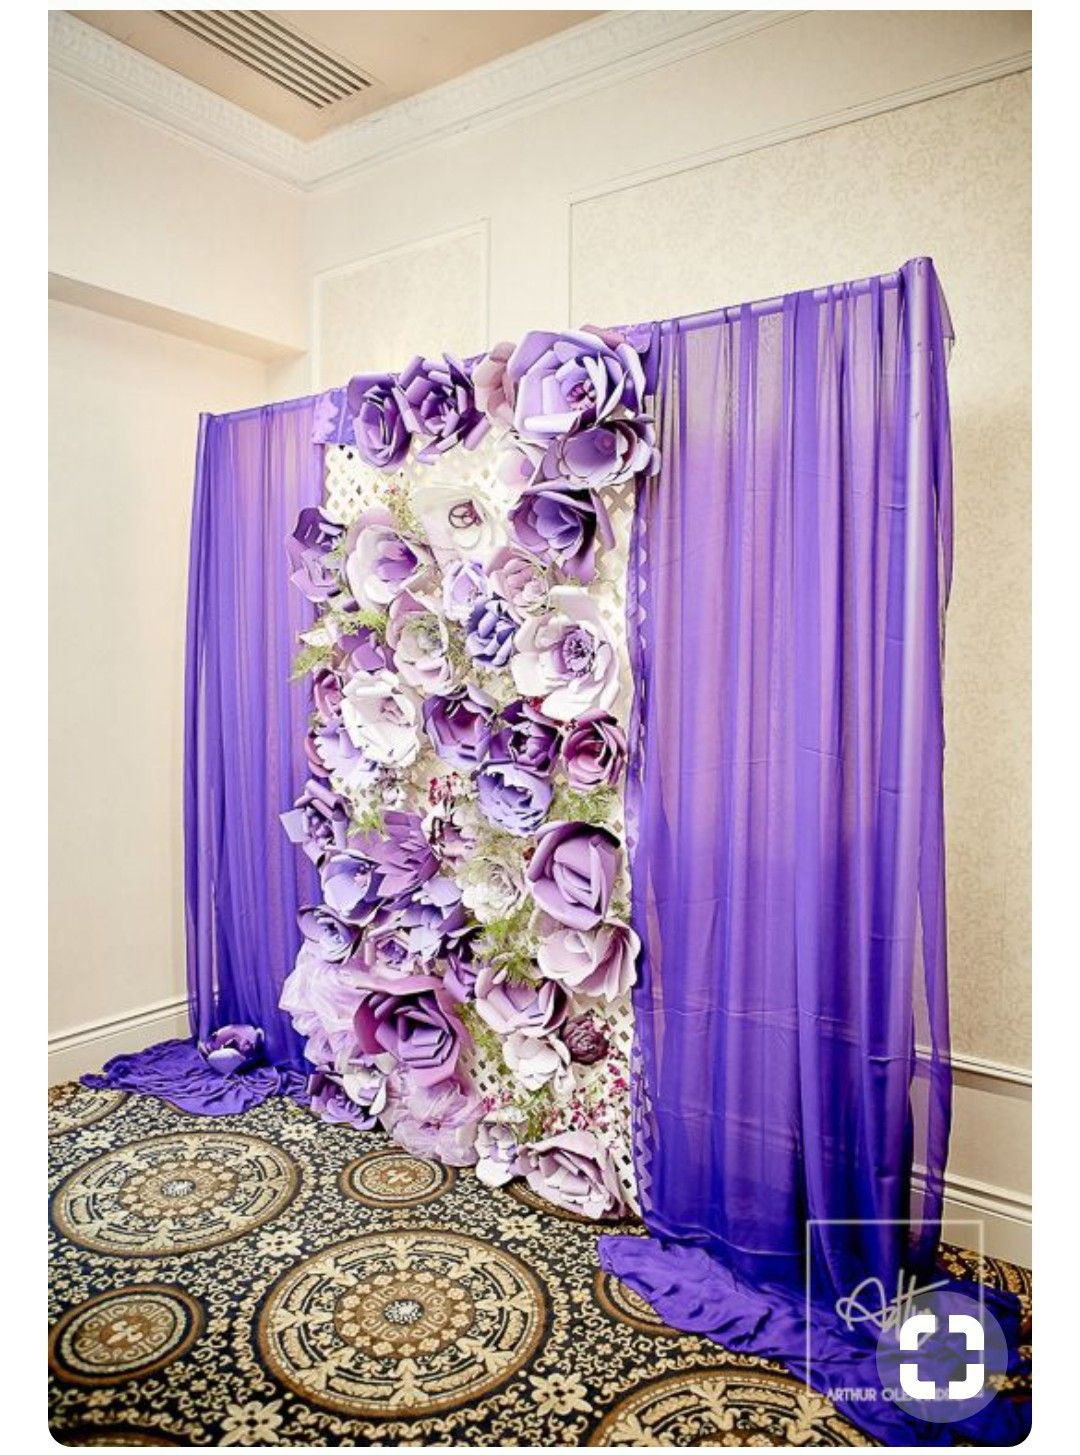 Wedding decorations stage backdrops october 2018 Pin by Patsy Montesino on backdrops in   Pinterest  Paper